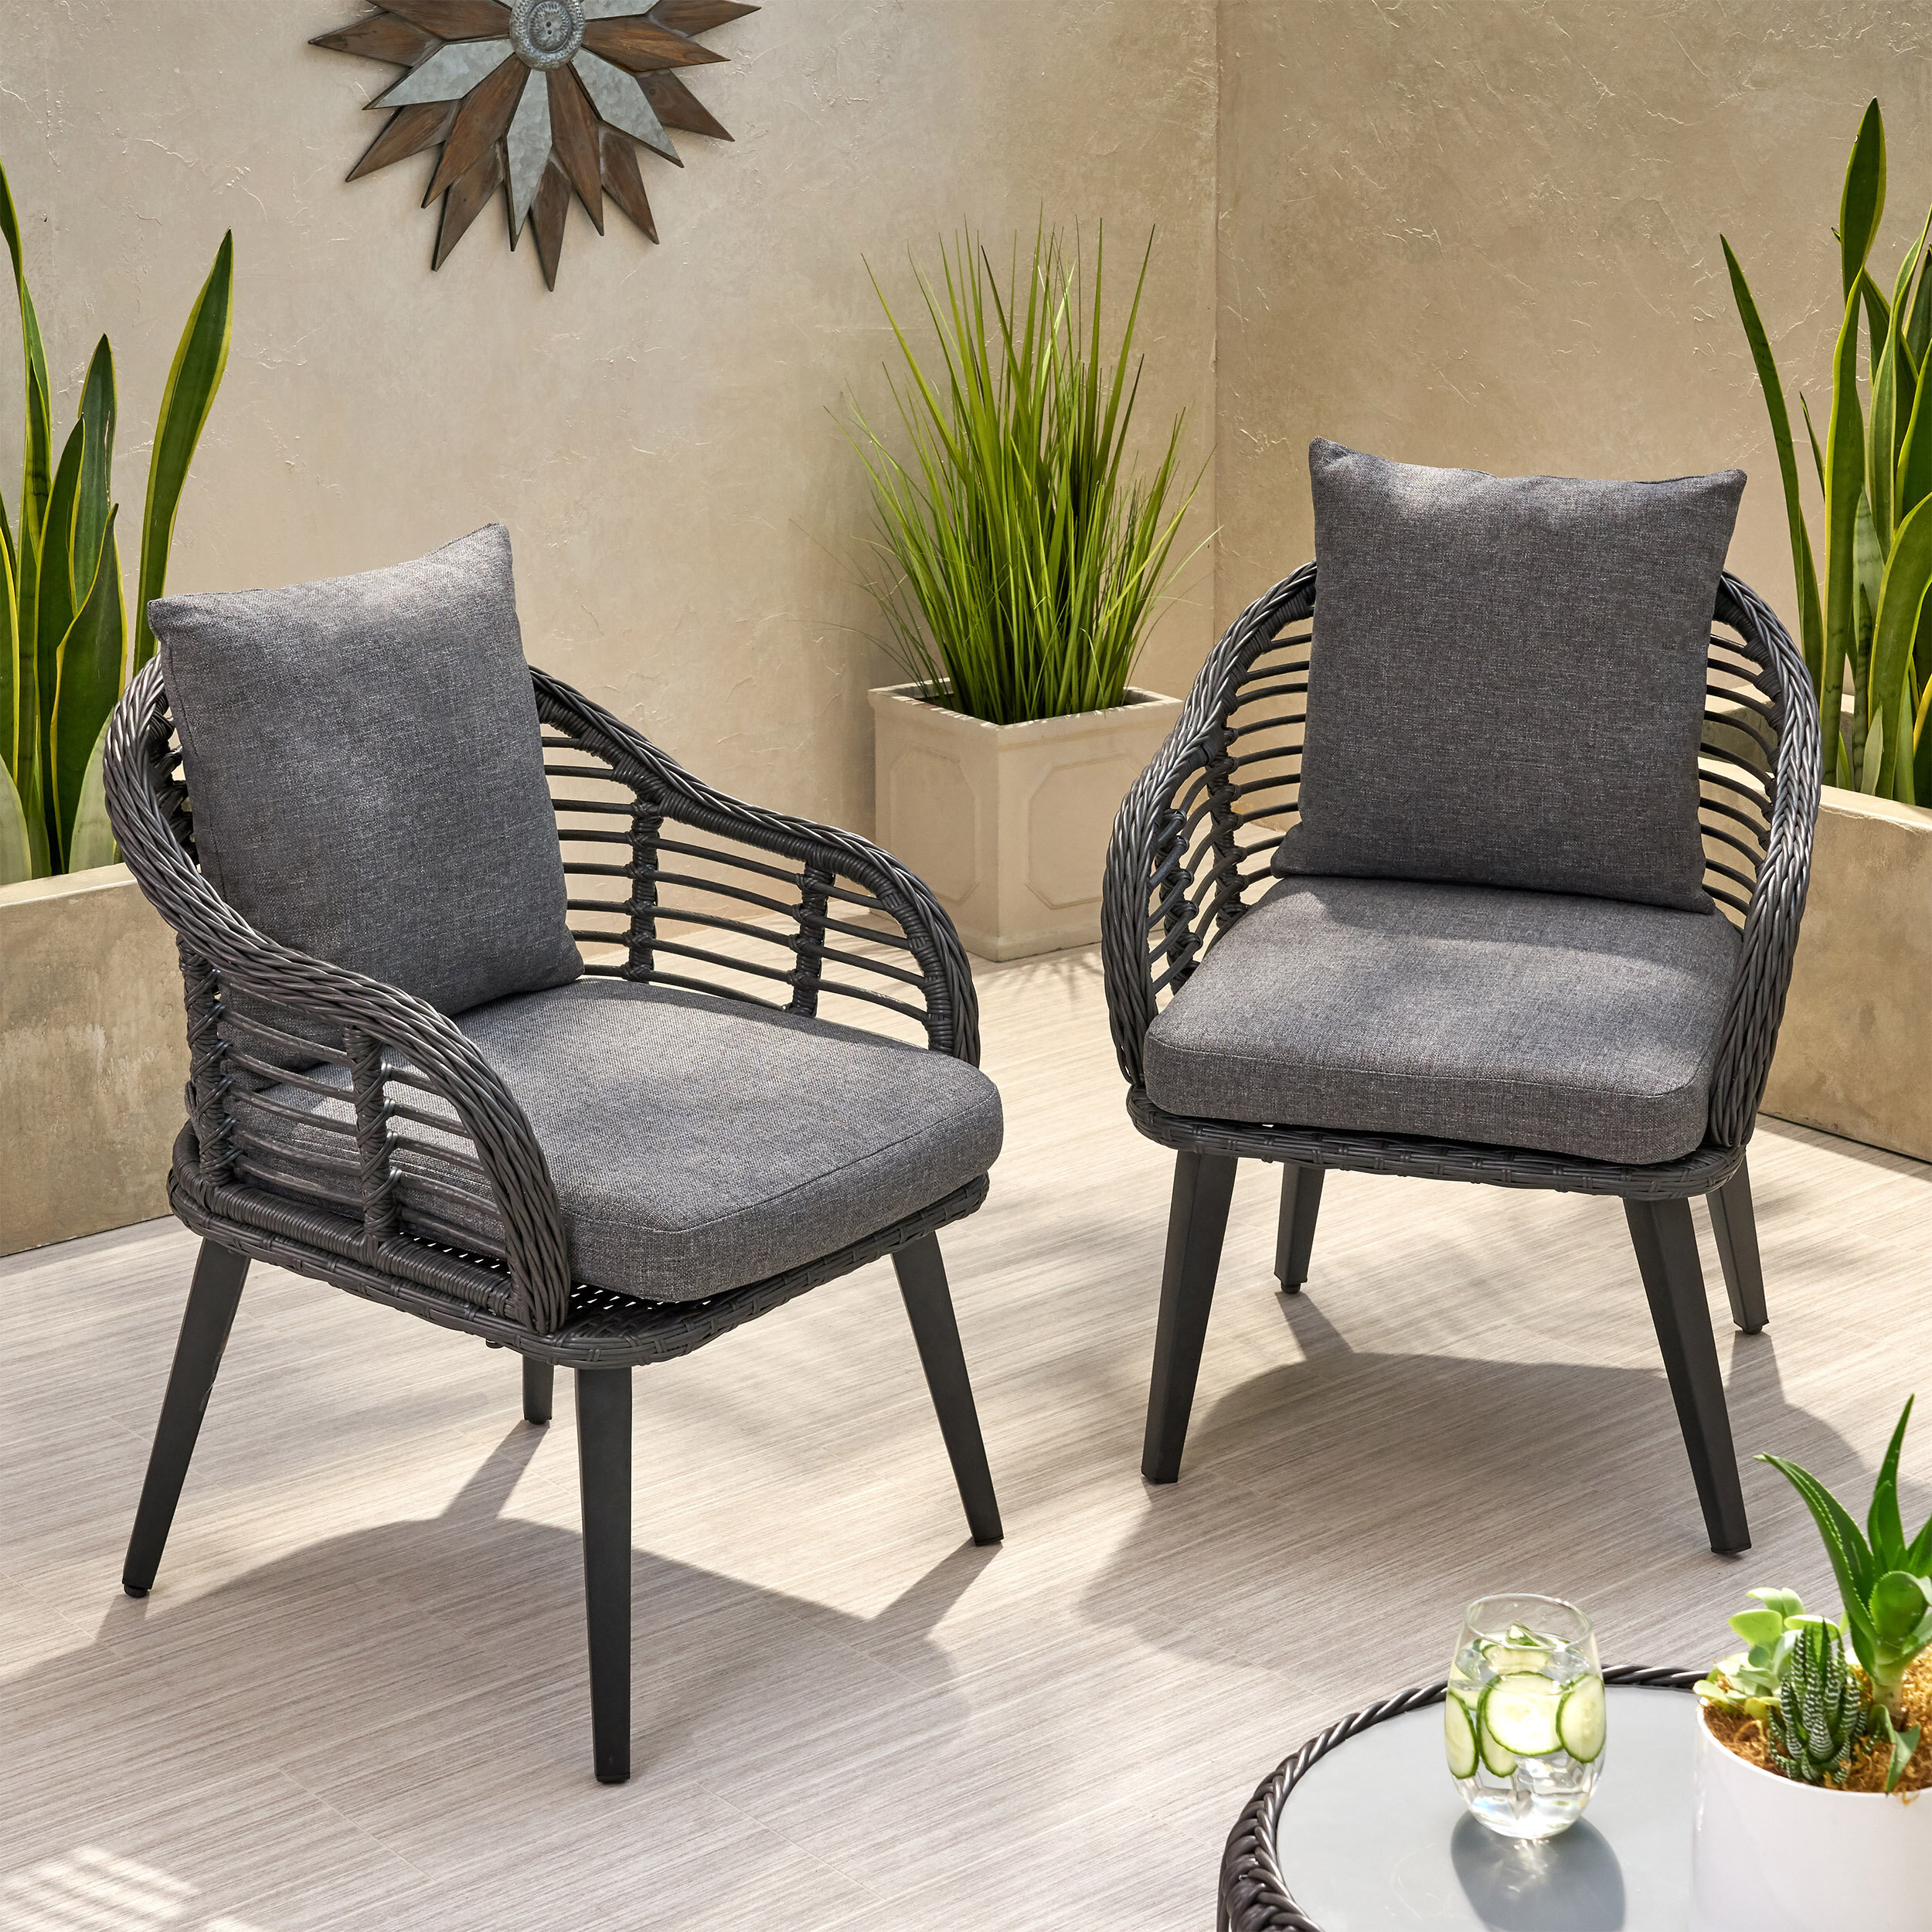 Aarhus Wicker Patio Chair with Cushions